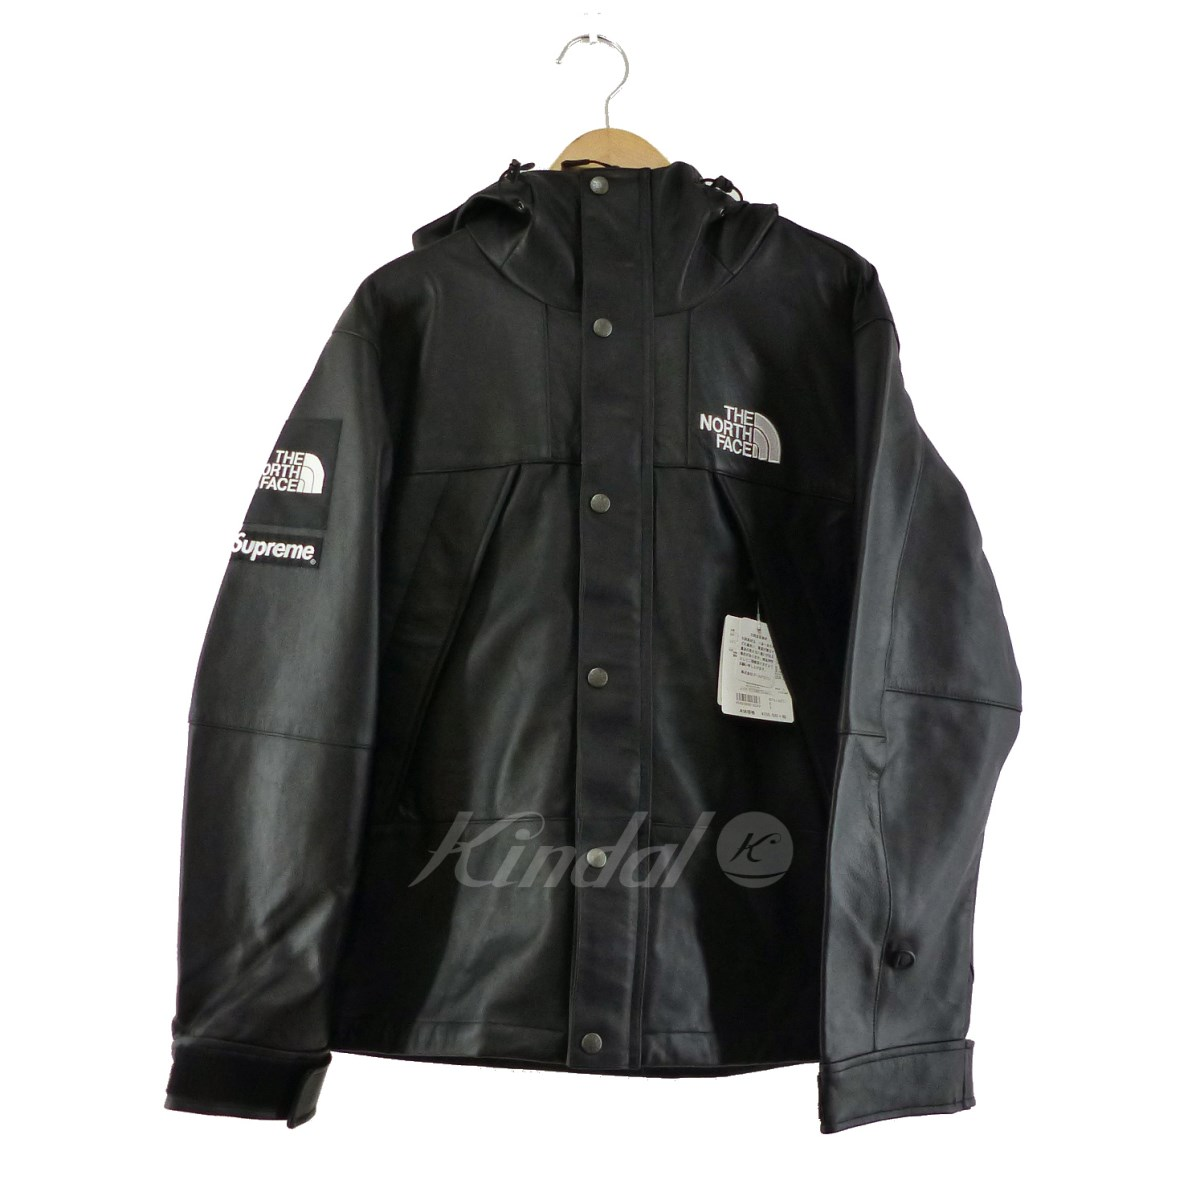 【中古】THE NORTH FACE×SUPREME 2018AW Leather Mountain parka 【送料無料】 【269899】 【KIND1550】